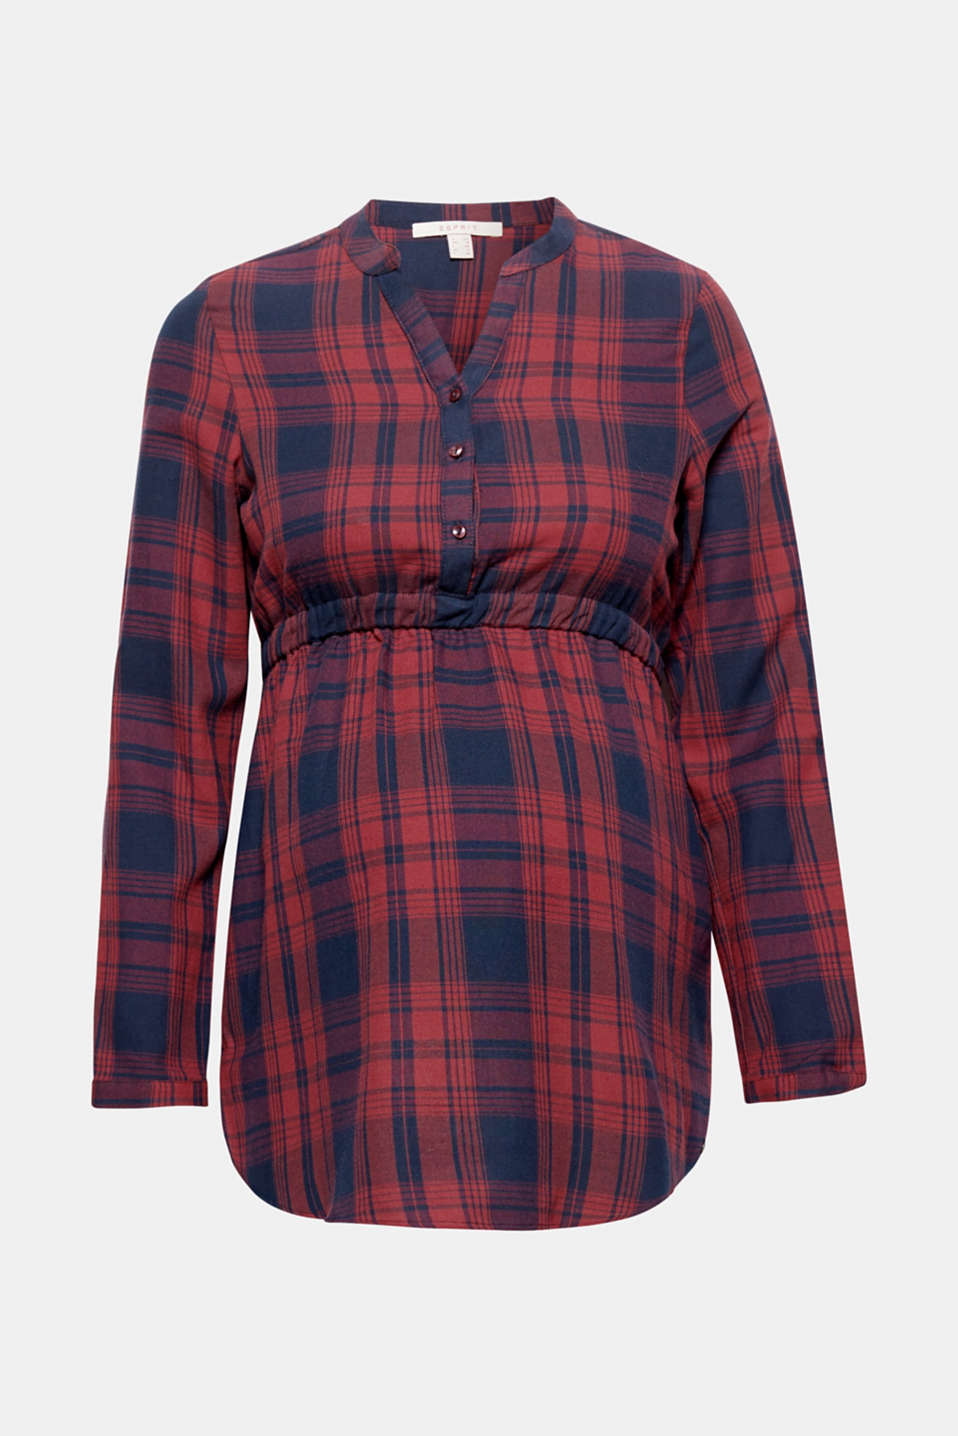 Esprit - Empire blouse with checks, 100% cotton